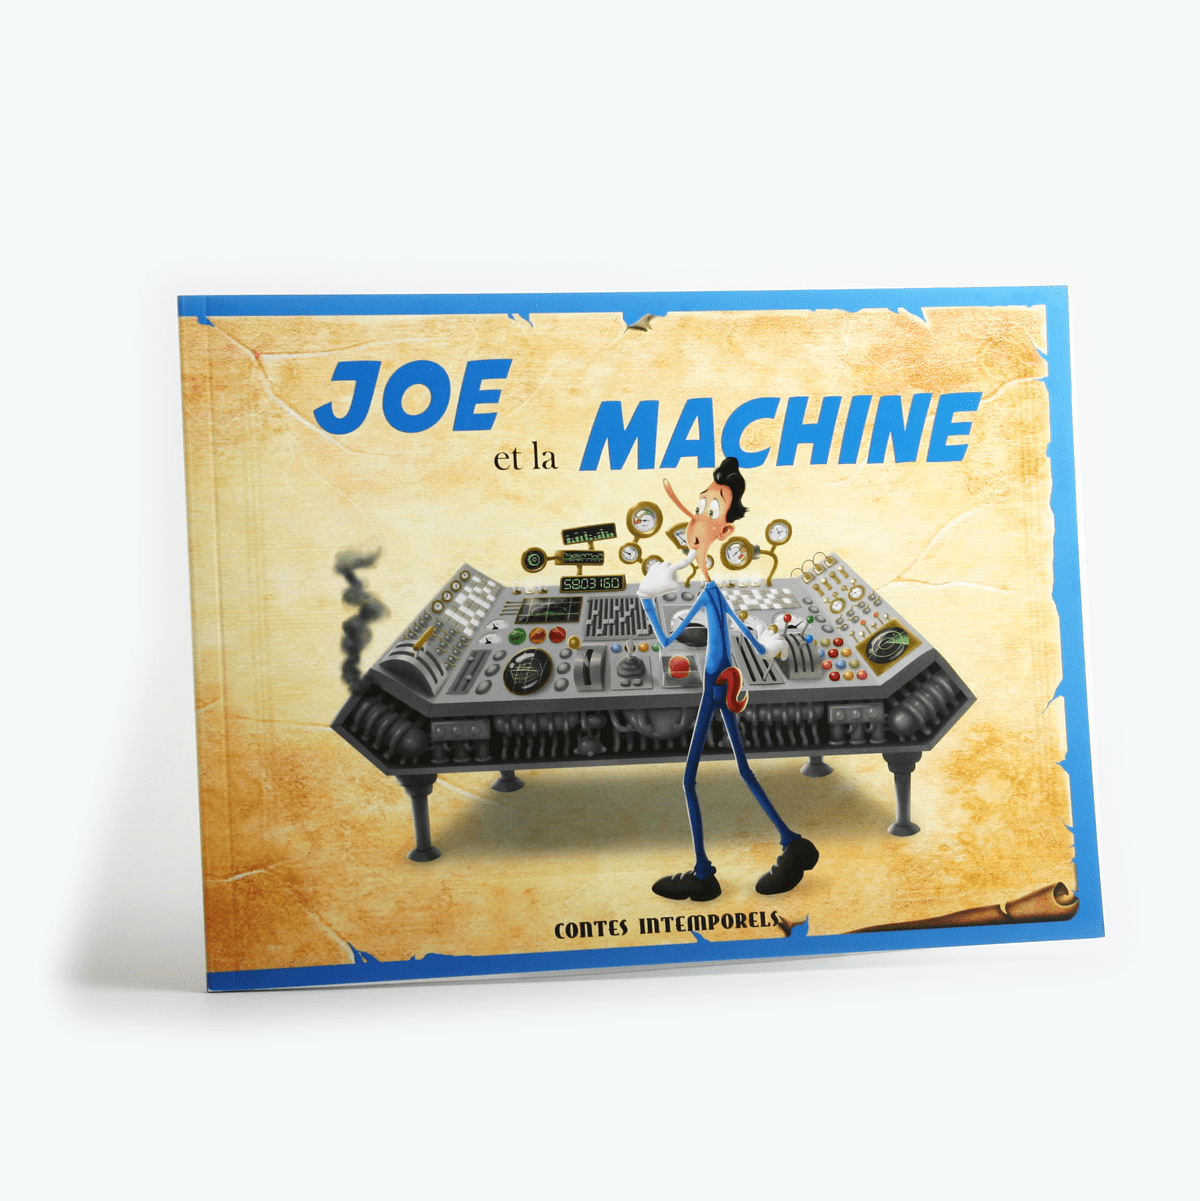 Joe et la machine